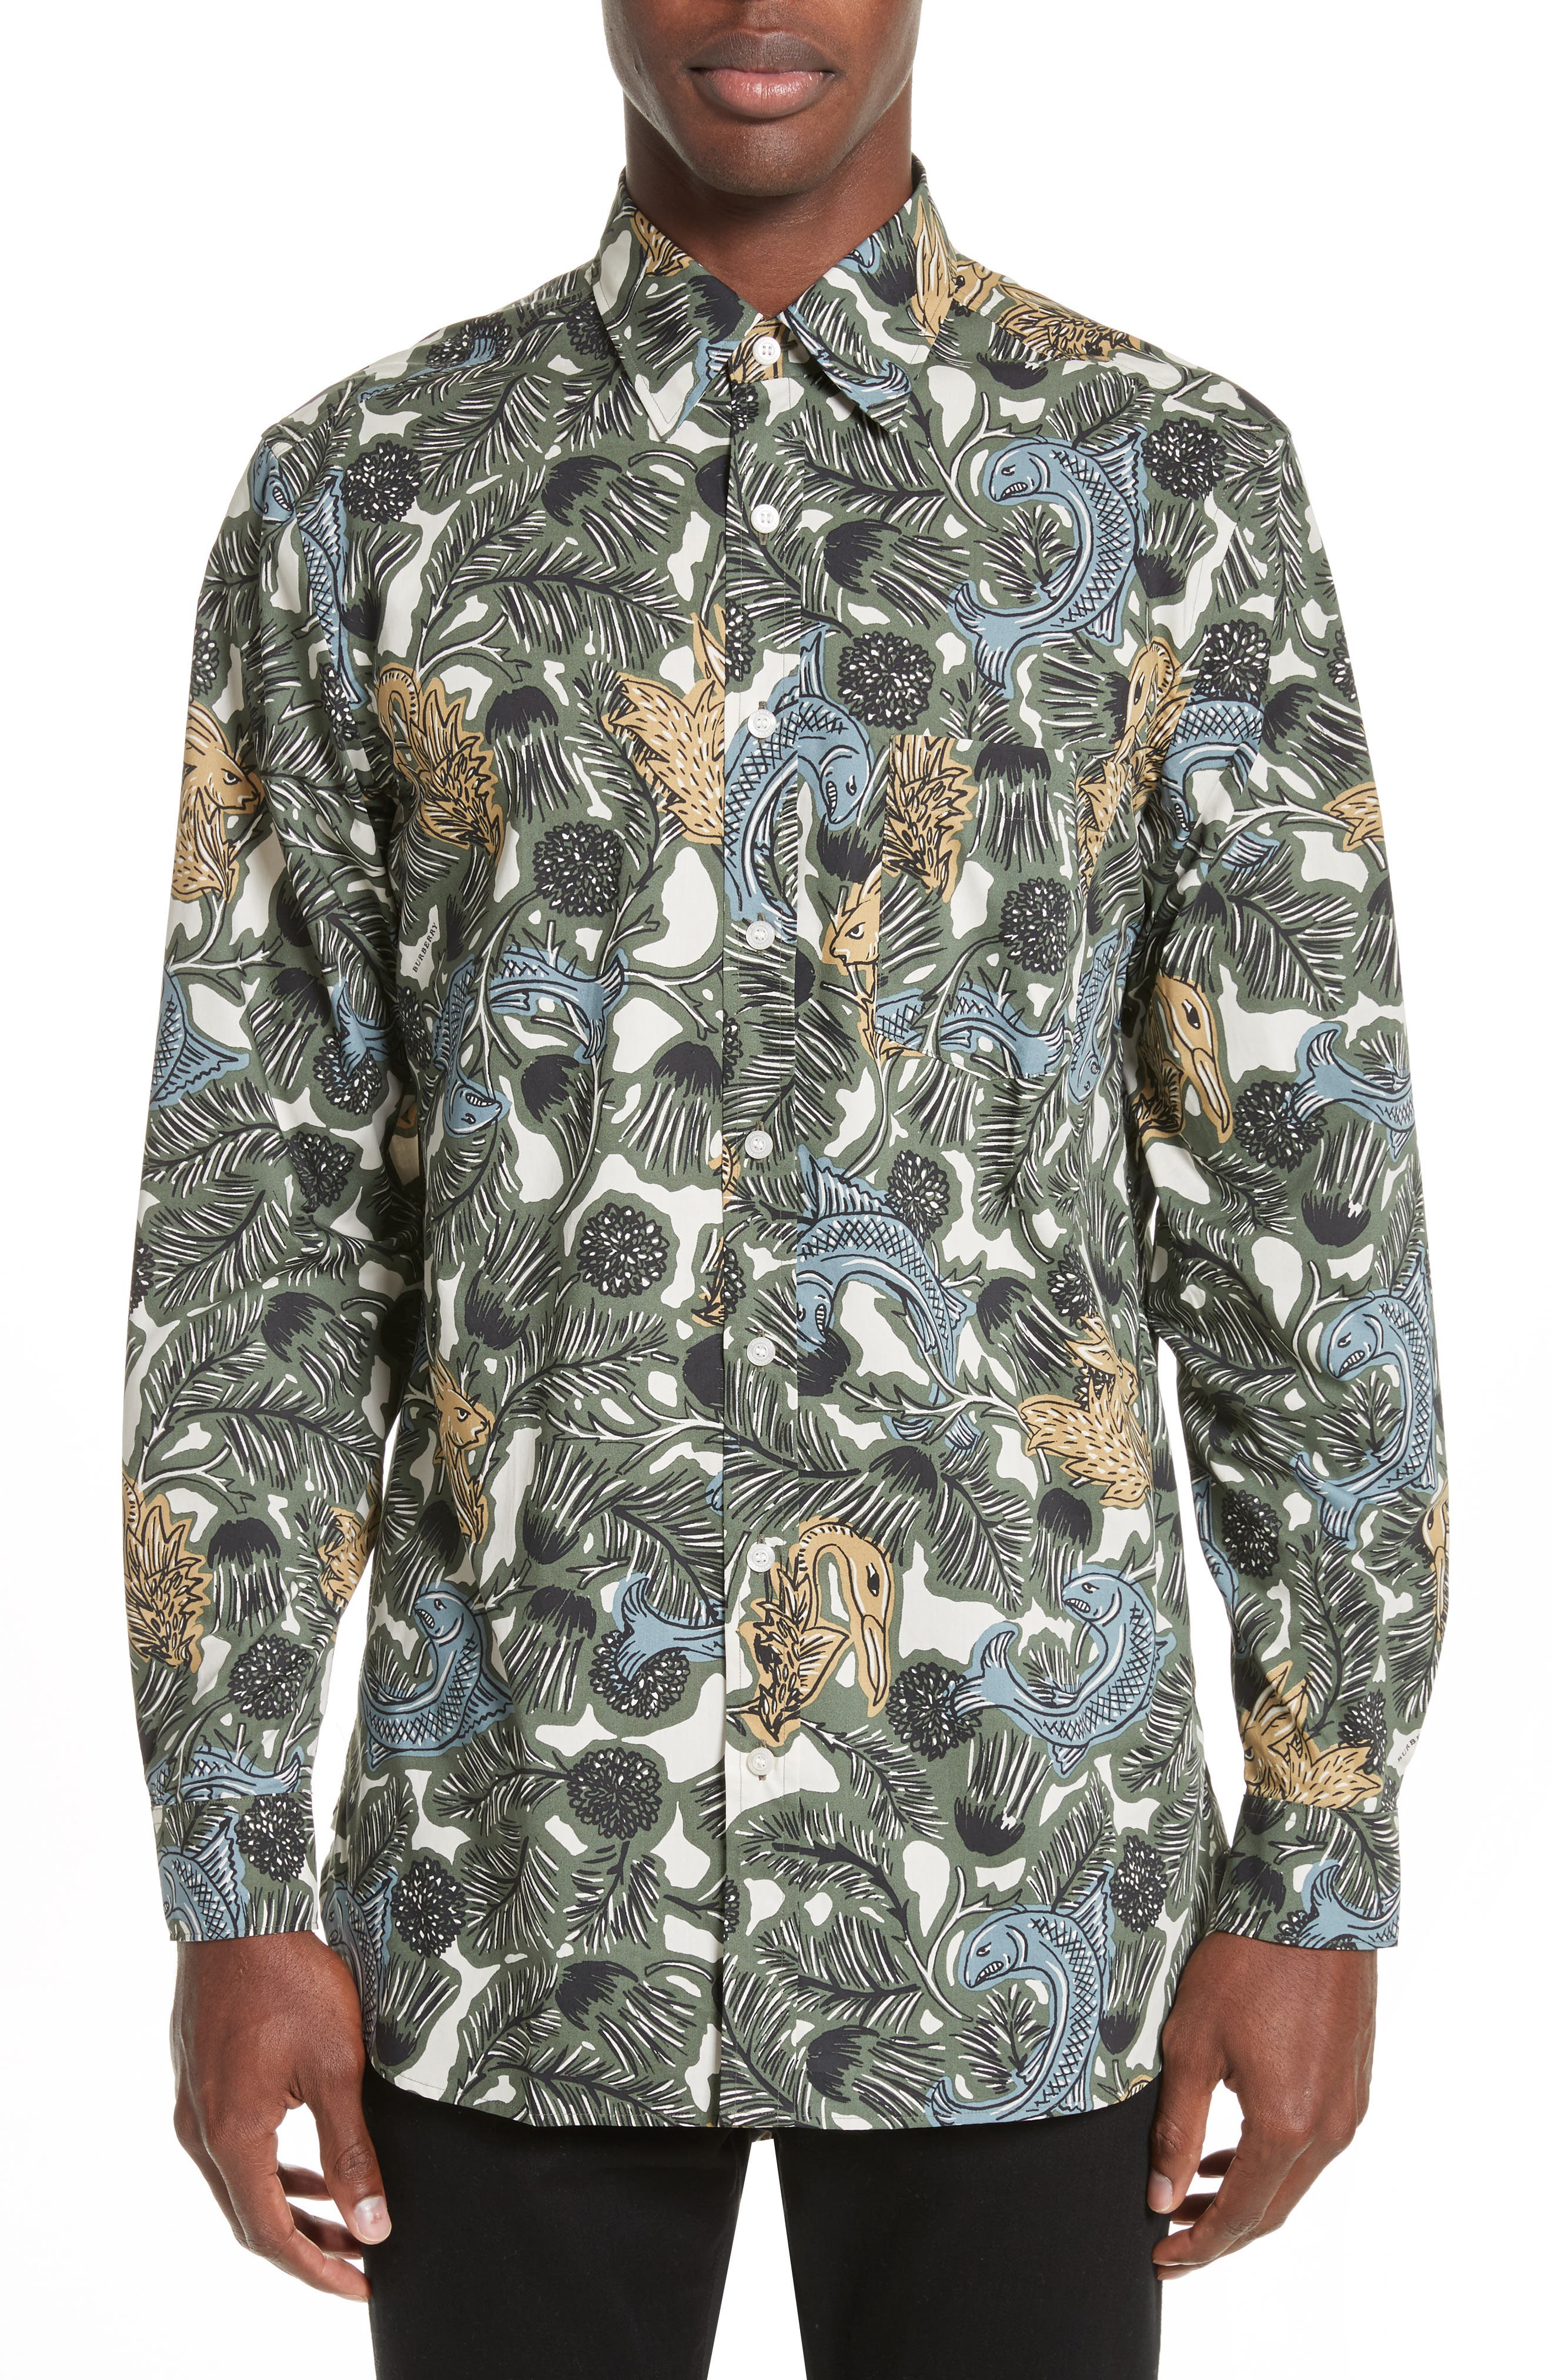 Whinfell Beasts Cotton Sport Shirt,                             Main thumbnail 1, color,                             305